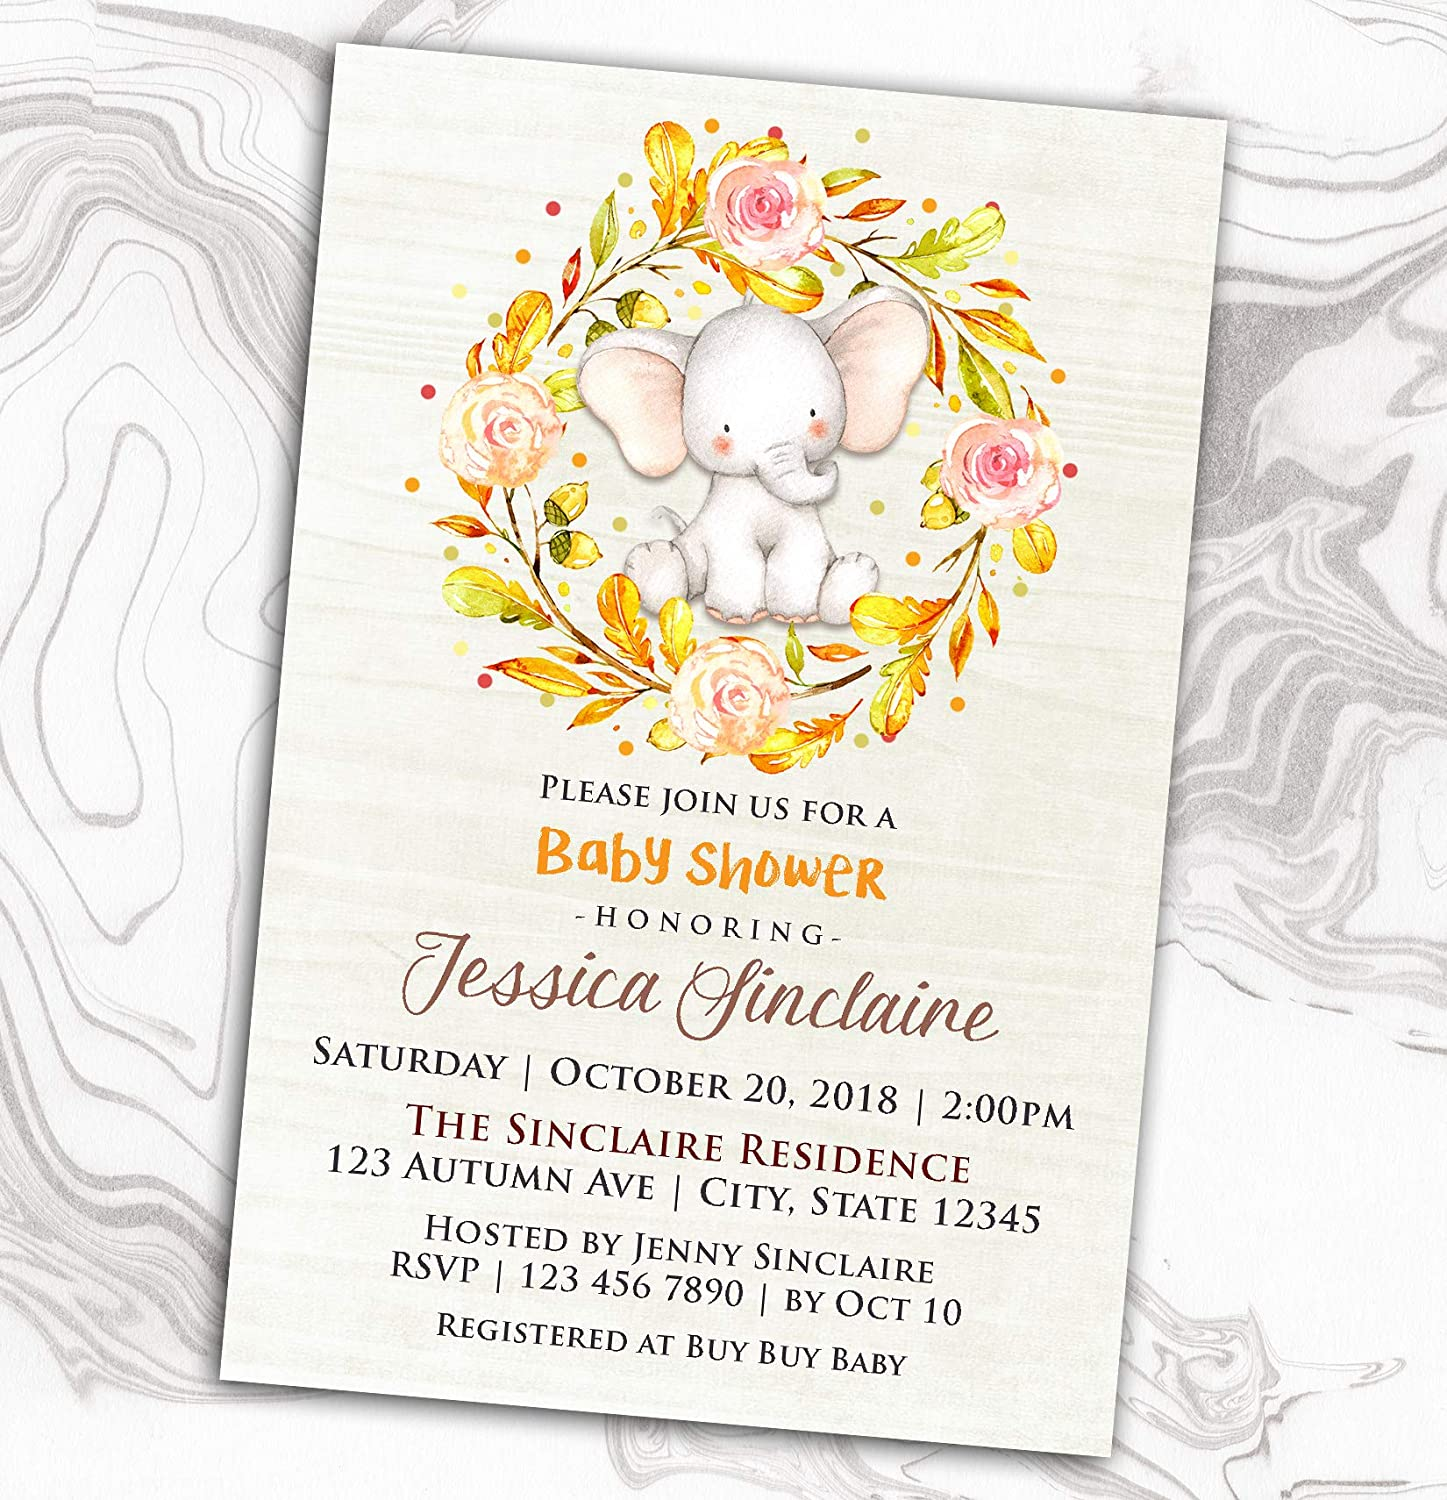 Fall Baby Shower Invitation - Sprinkle Diaper Max 85% OFF Little Elephant Seattle Mall